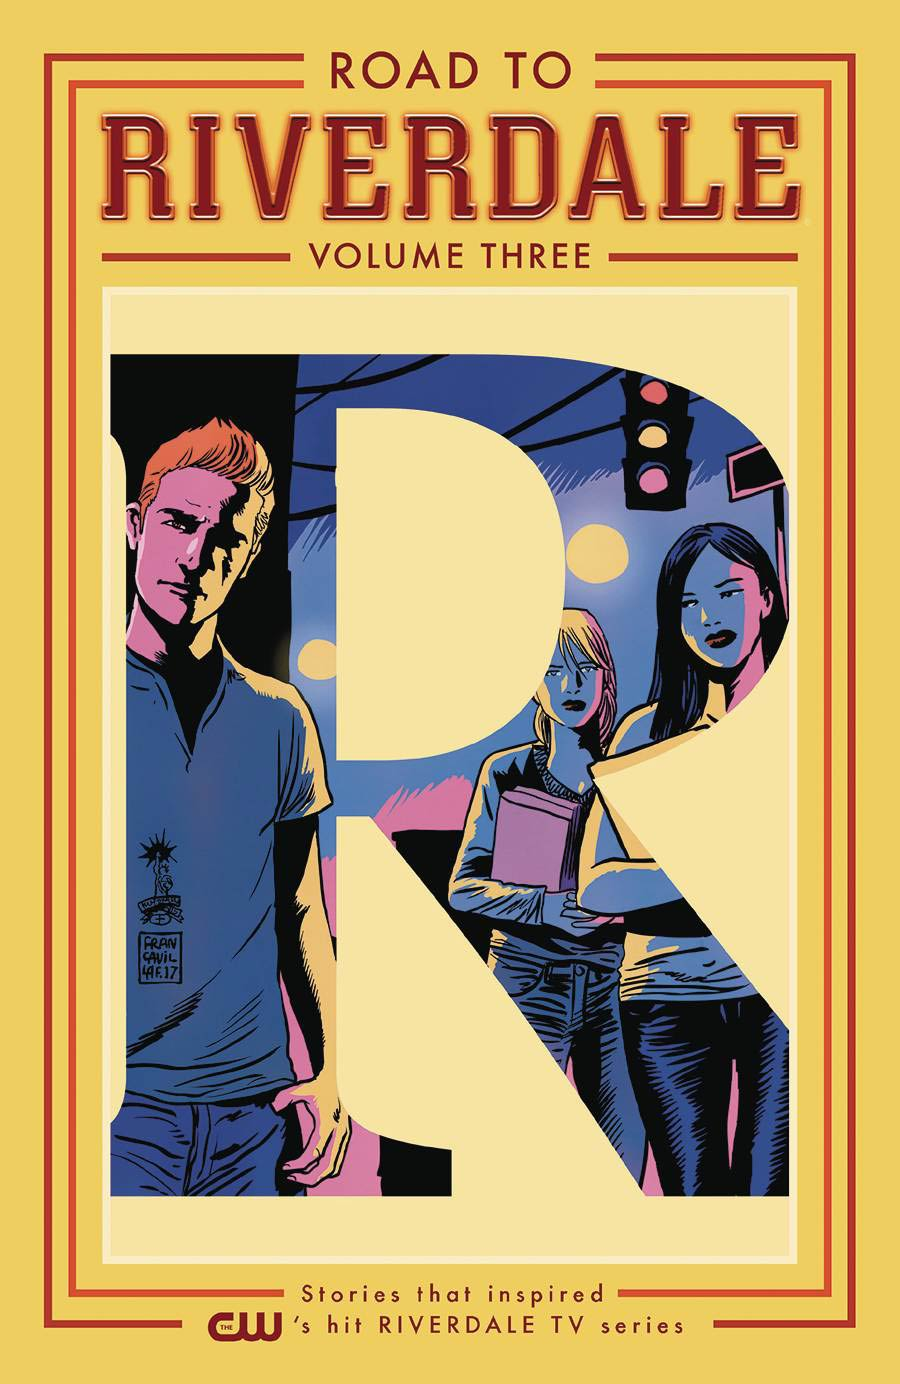 Road To Riverdale Vol 3 TP